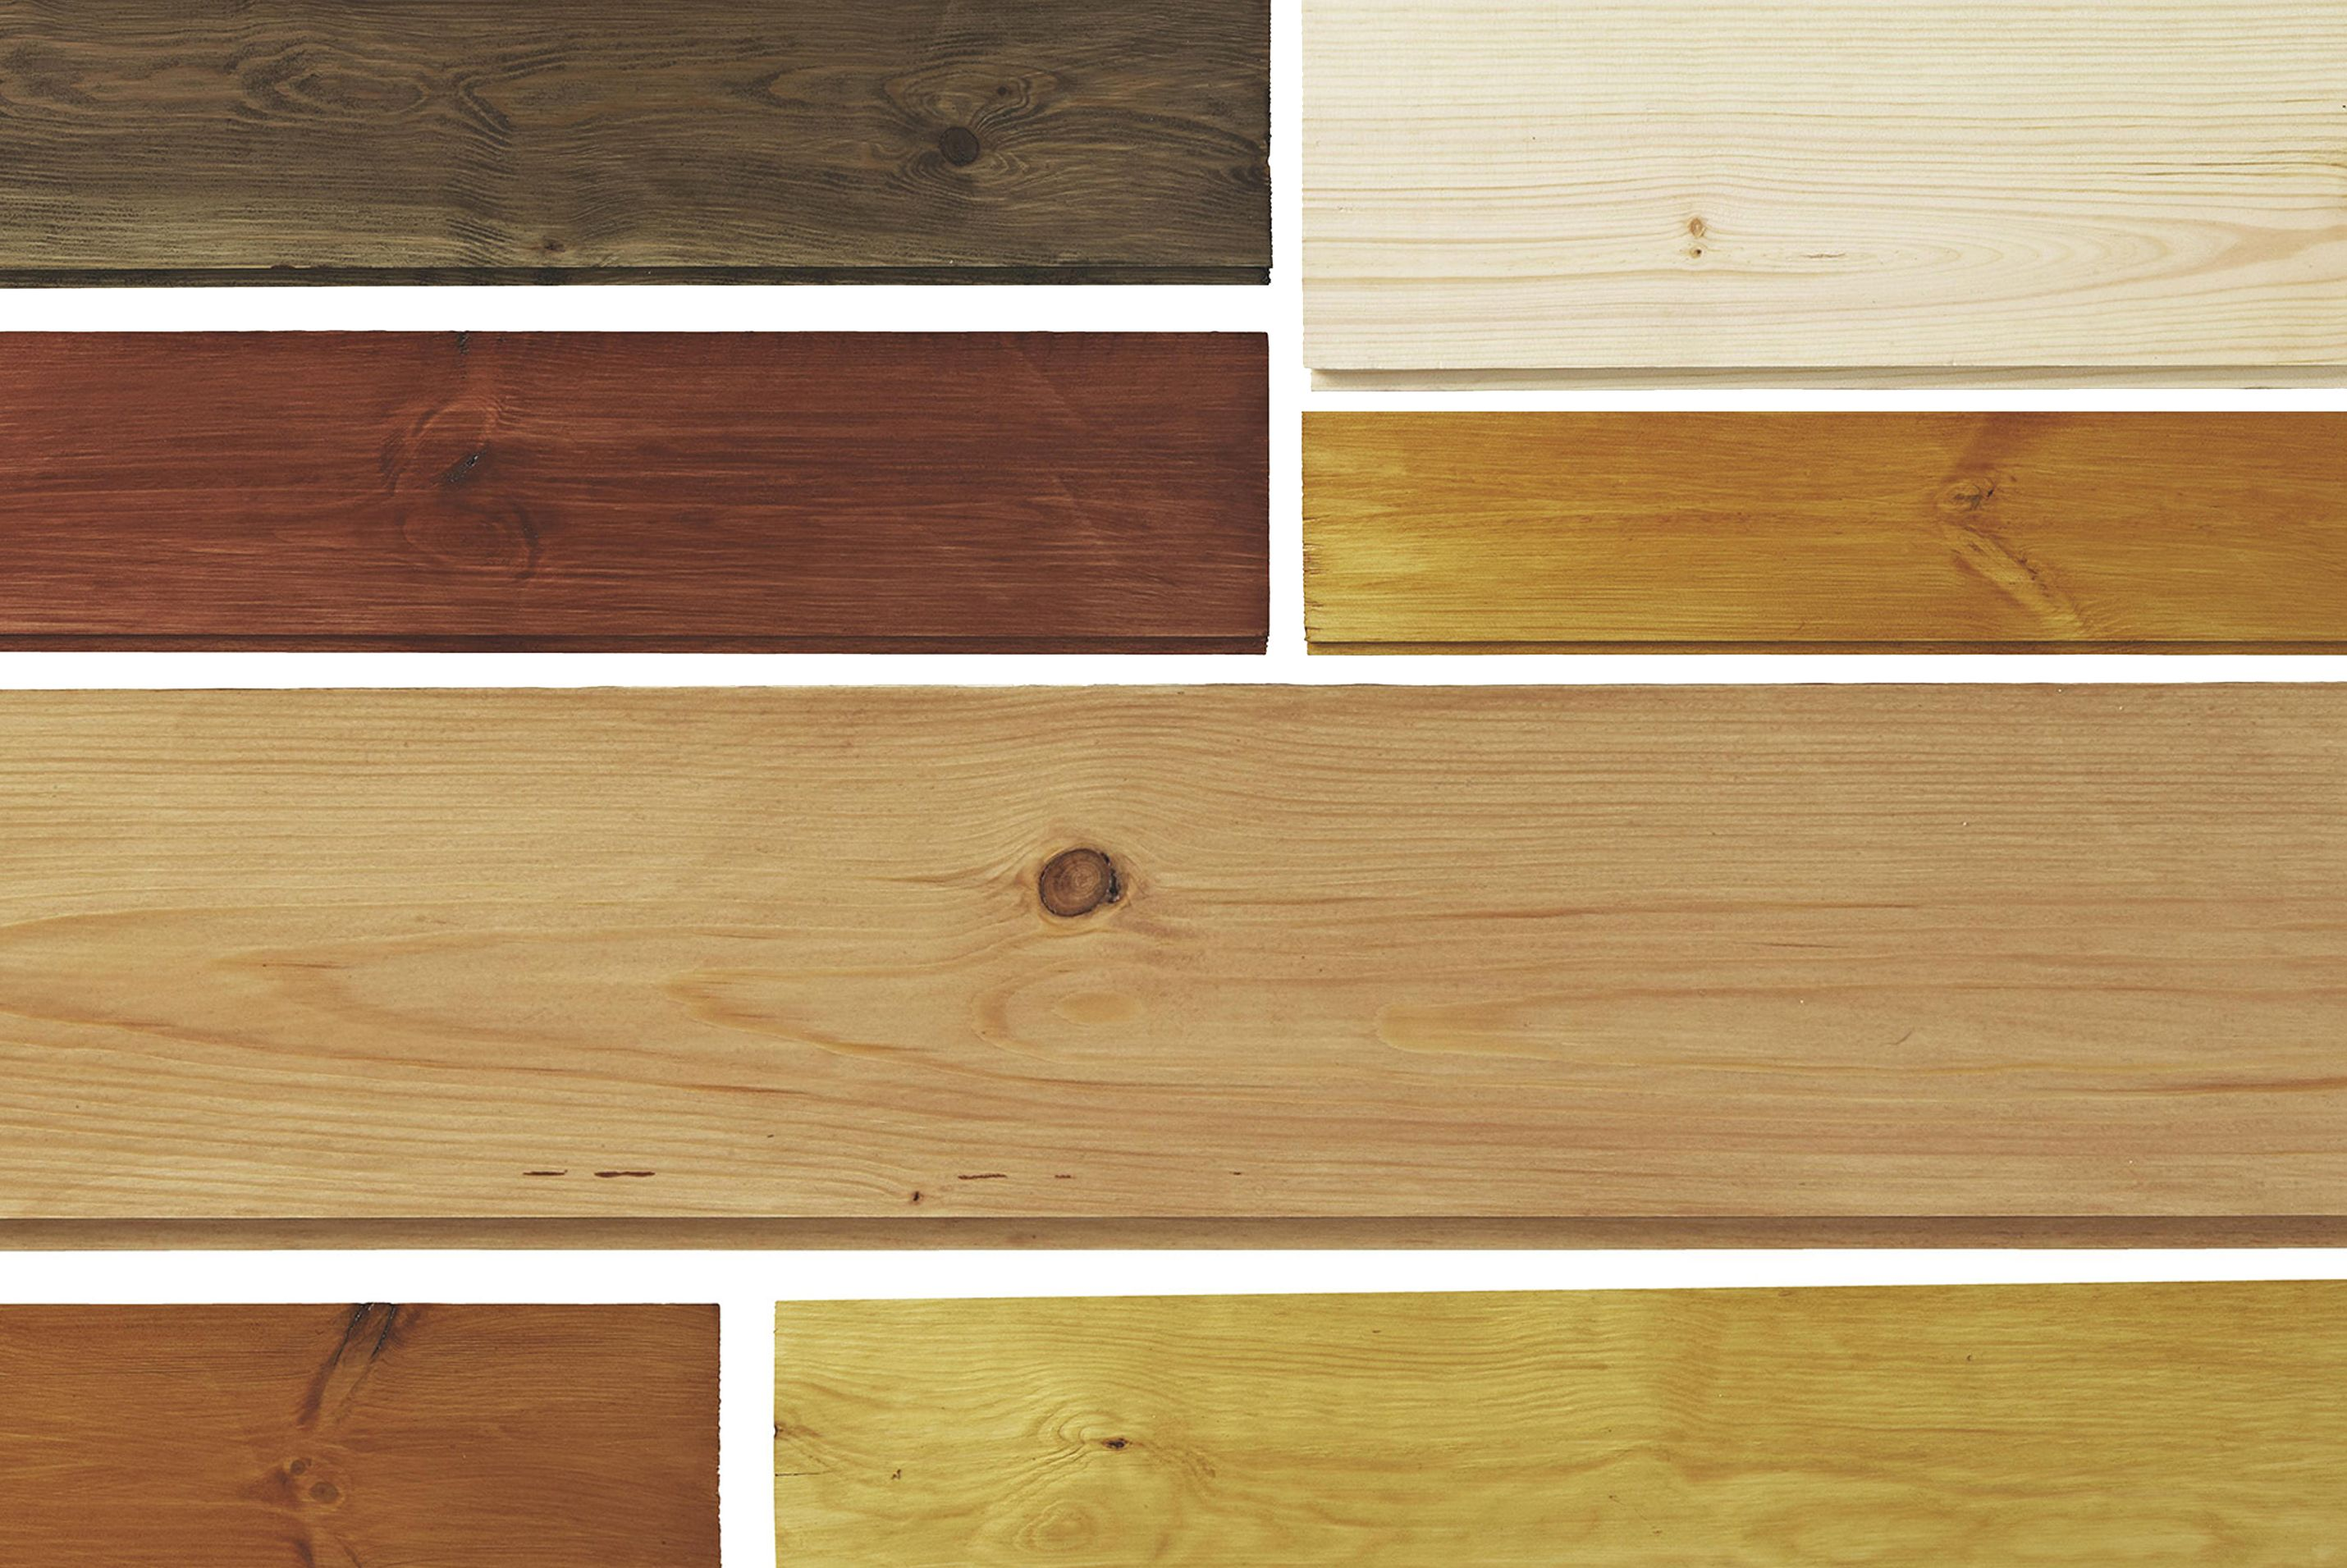 Timber Amp Board Buying Guide Ideas Amp Advice Diy At B Amp Q